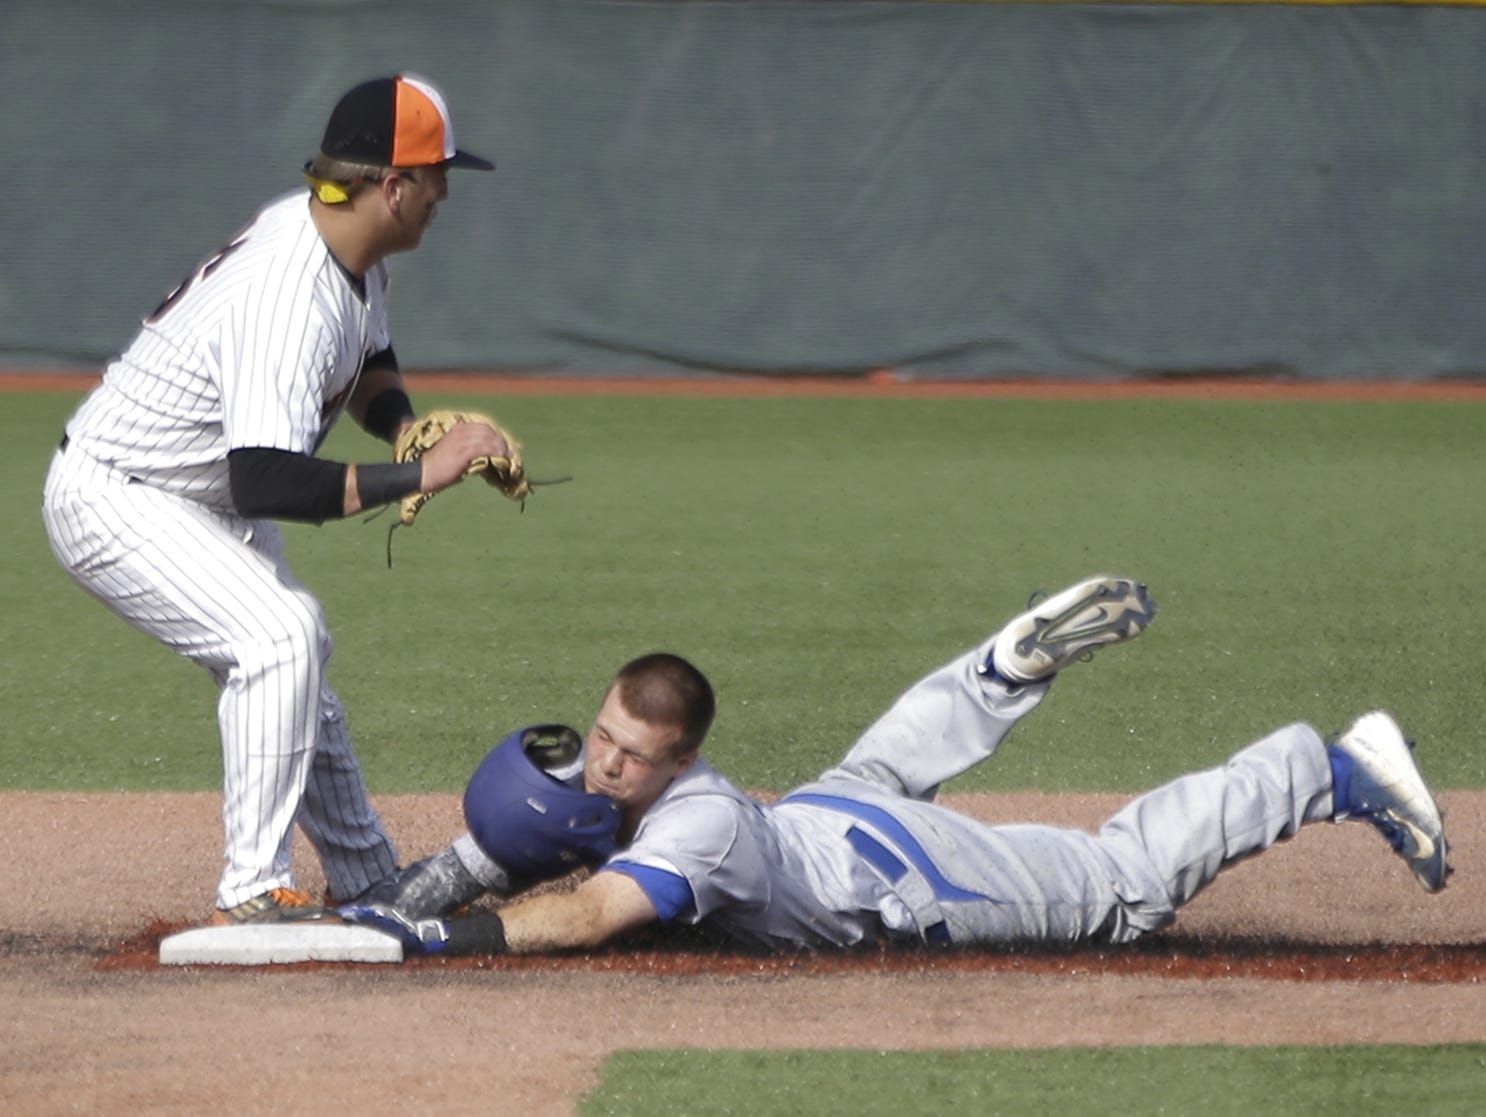 Summit's Eric Terry slides into second base with a double during their 2-1 win over Waynesville, Friday, May 29,2015. (Photo by Tony Tribble)